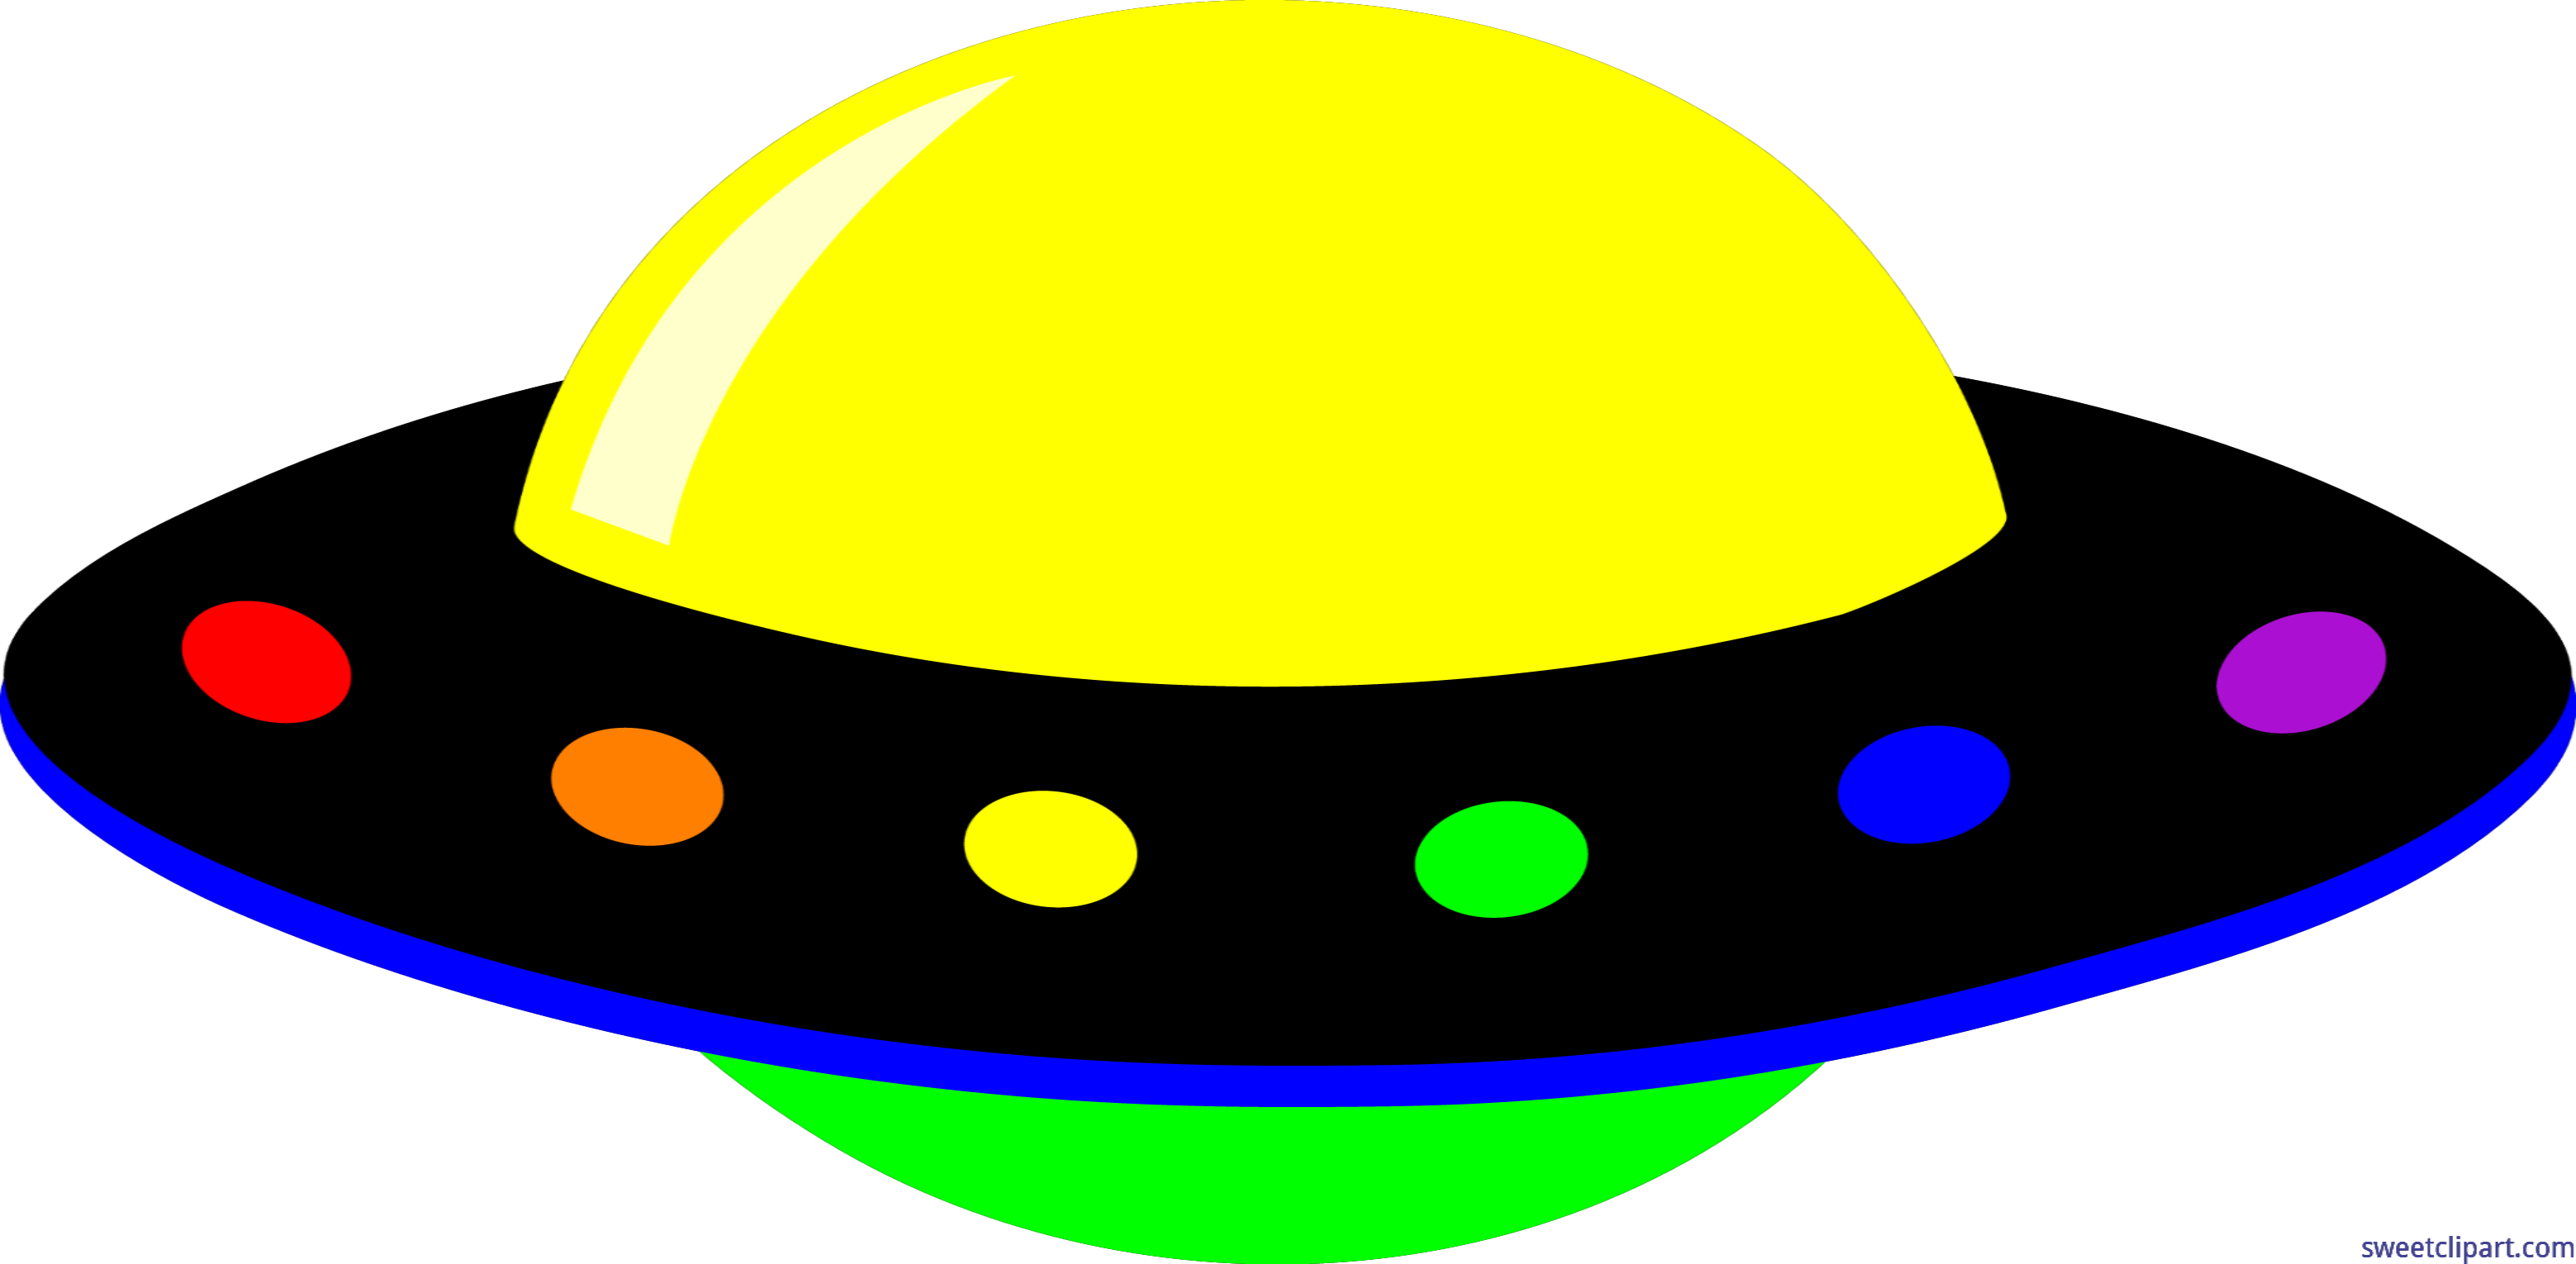 clip art freeuse stock Ufo clipart. House free on dumielauxepices